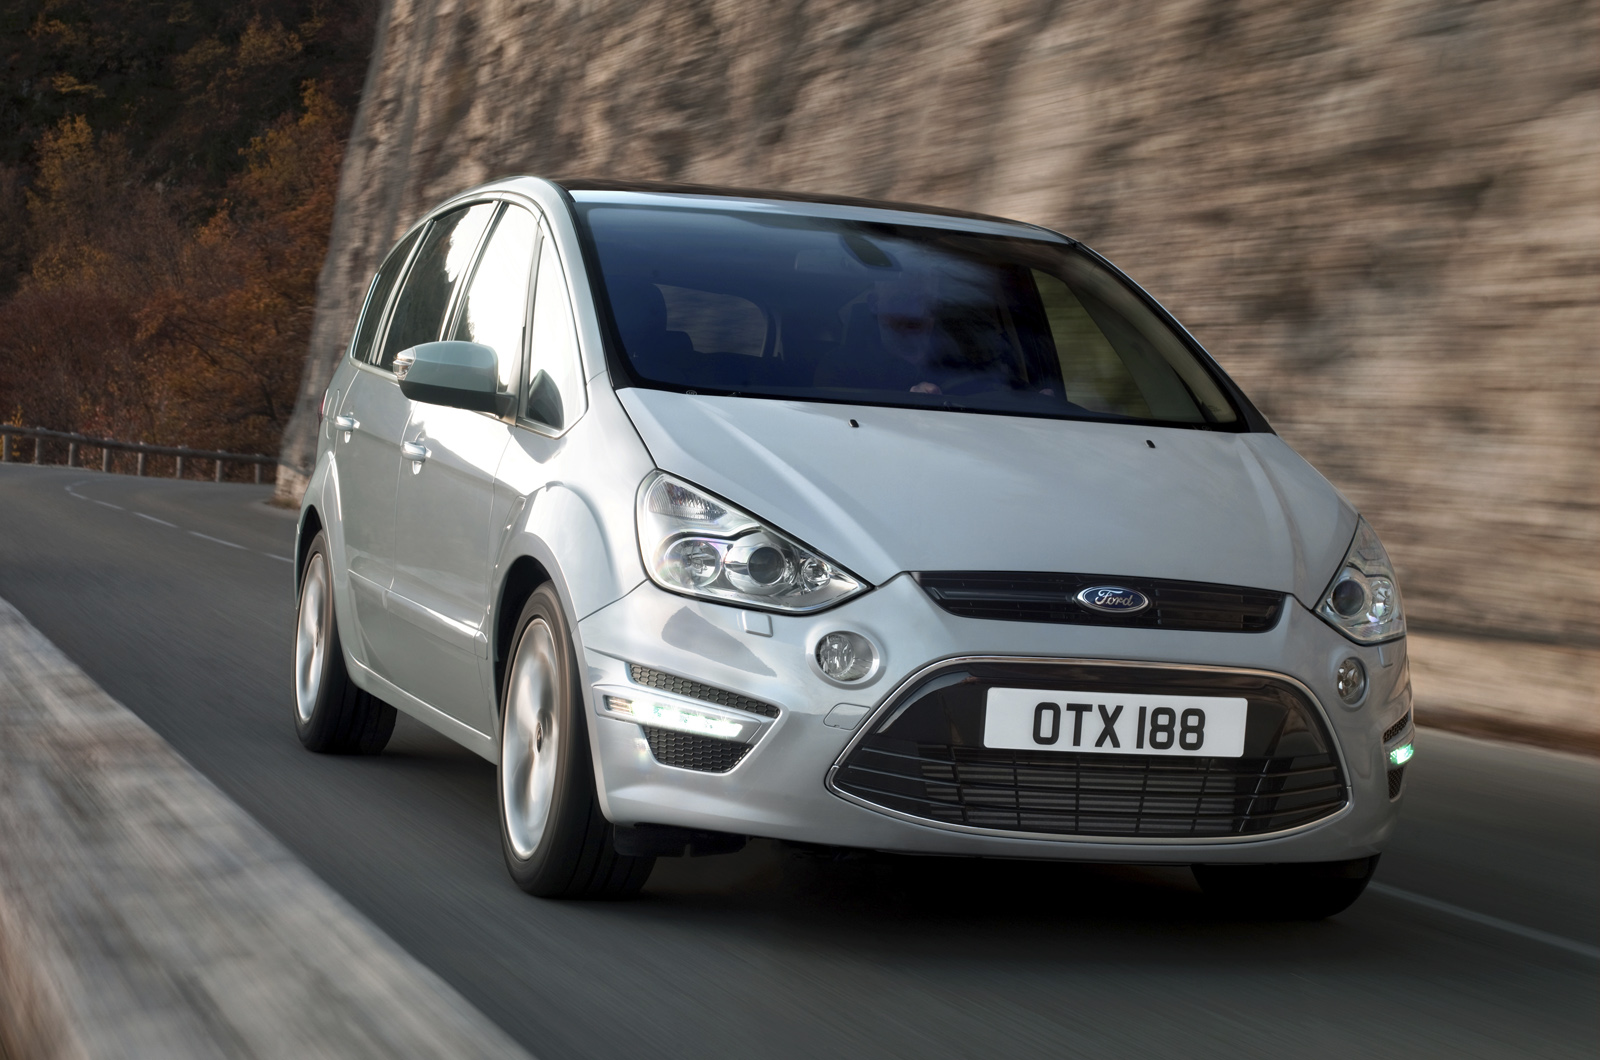 ford s-max 2.0 scti-pic. 2